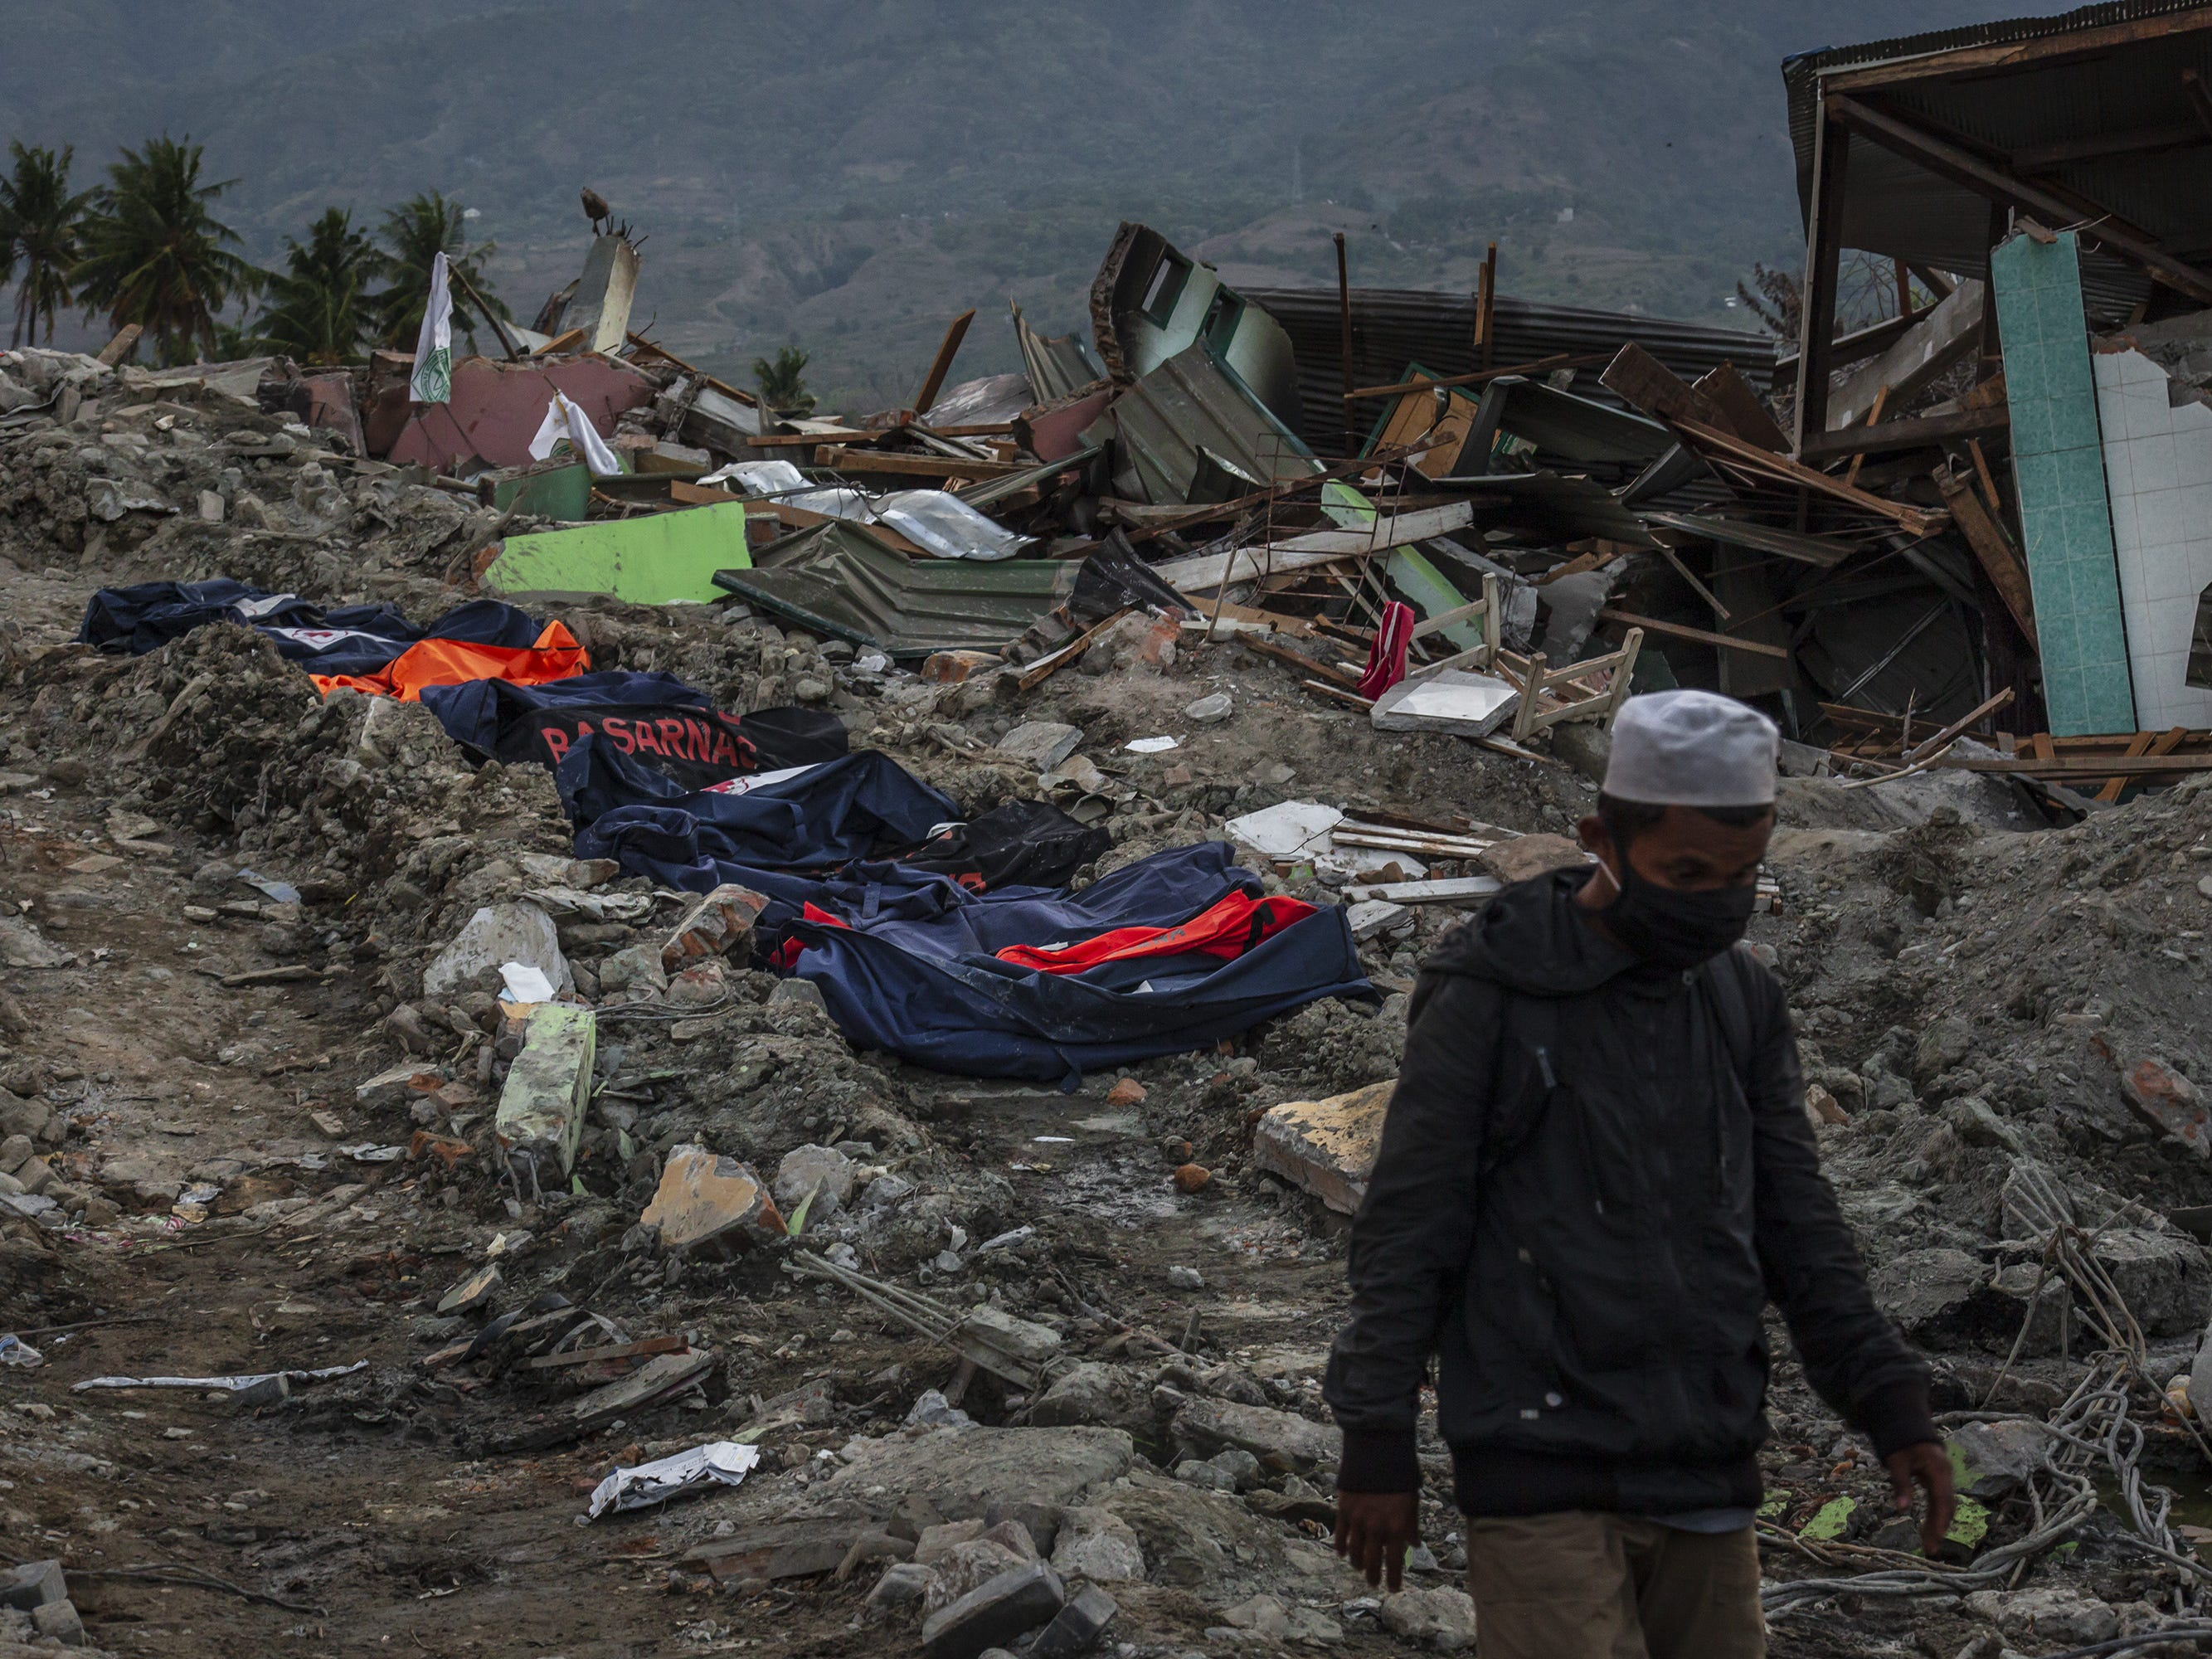 An Indonesian man walks past bodies of victims at Balaroa village following an earthquake, Oct. 6, 2018, in Palu, Central Sulawesi, Indonesia. The death toll from last weeks earthquake and tsunami has risen to more than 1,500, but power had returned to parts of the city and fuel shipments have begun.